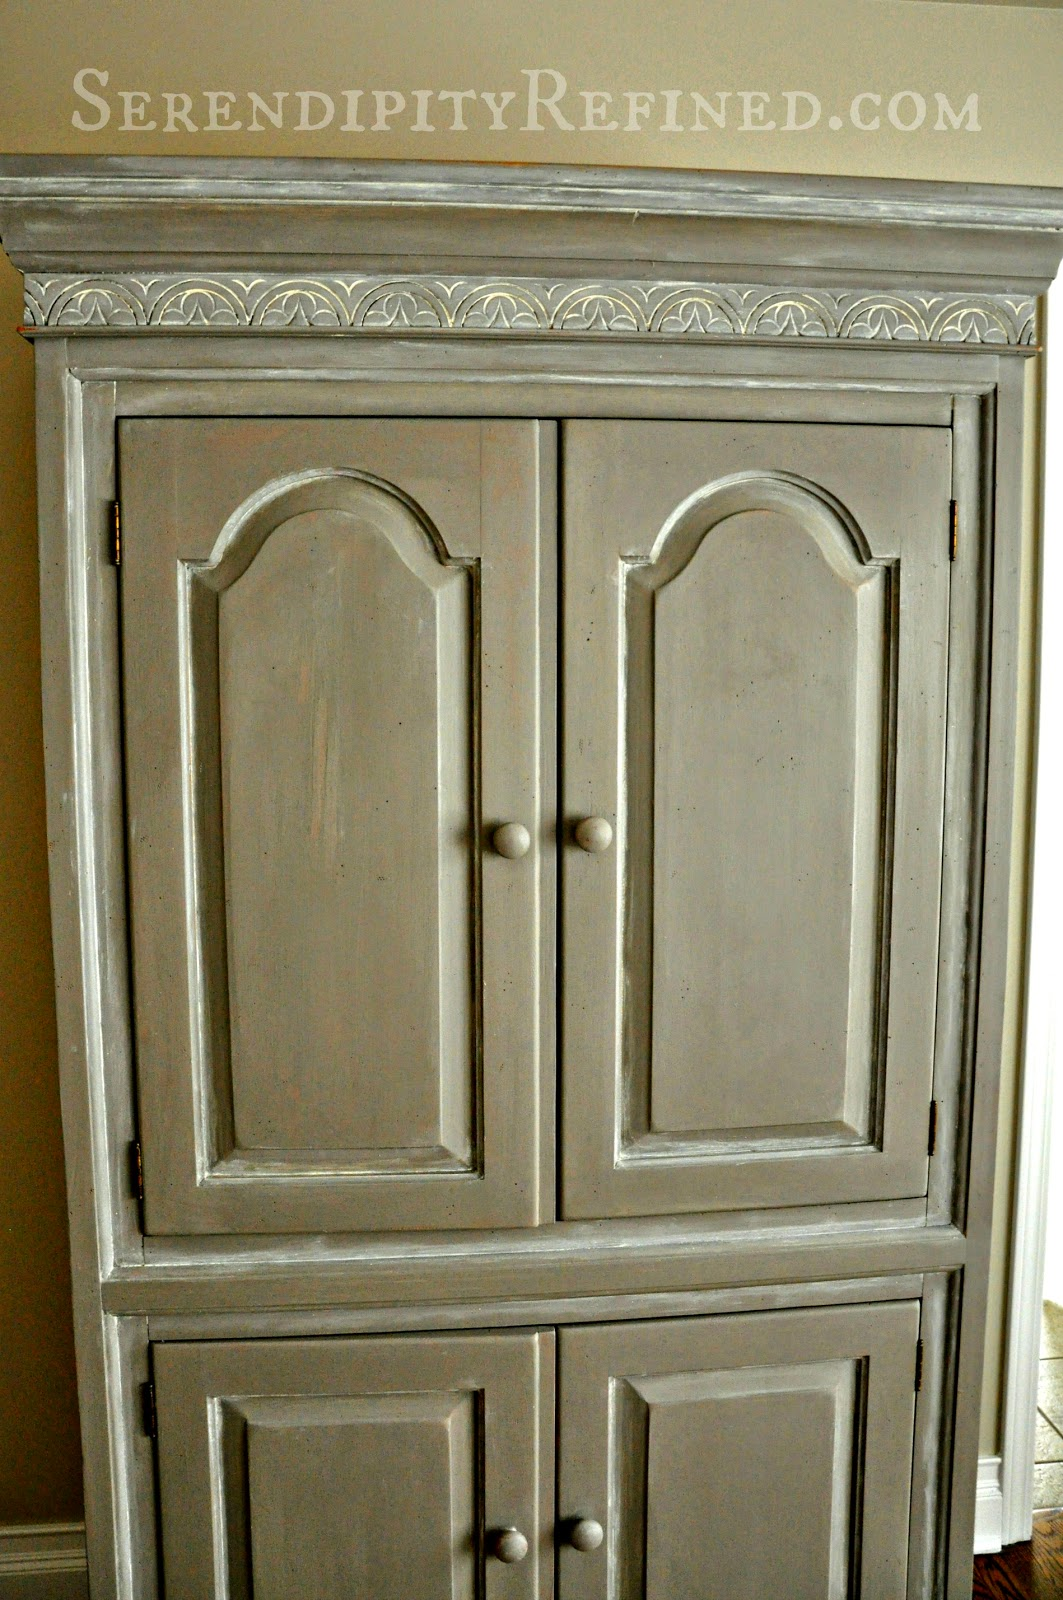 Serendipity Refined Blog: Reader Painted Furniture DIY ...